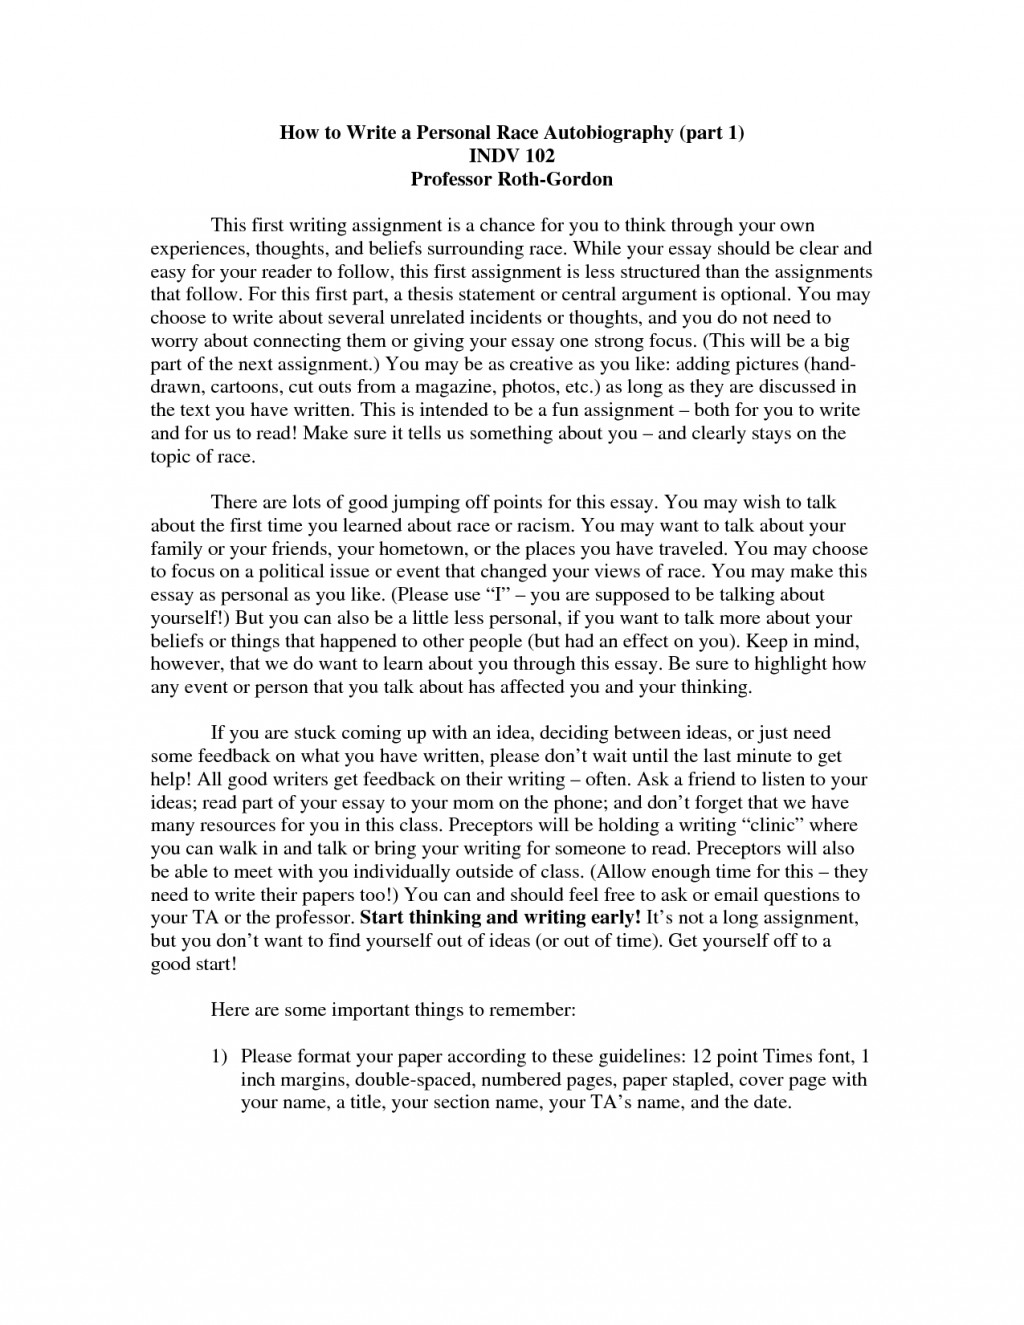 027 How To Write An Autobiography Essay 88329 Unusual Examples Autobiographical Incident Format Samples Large